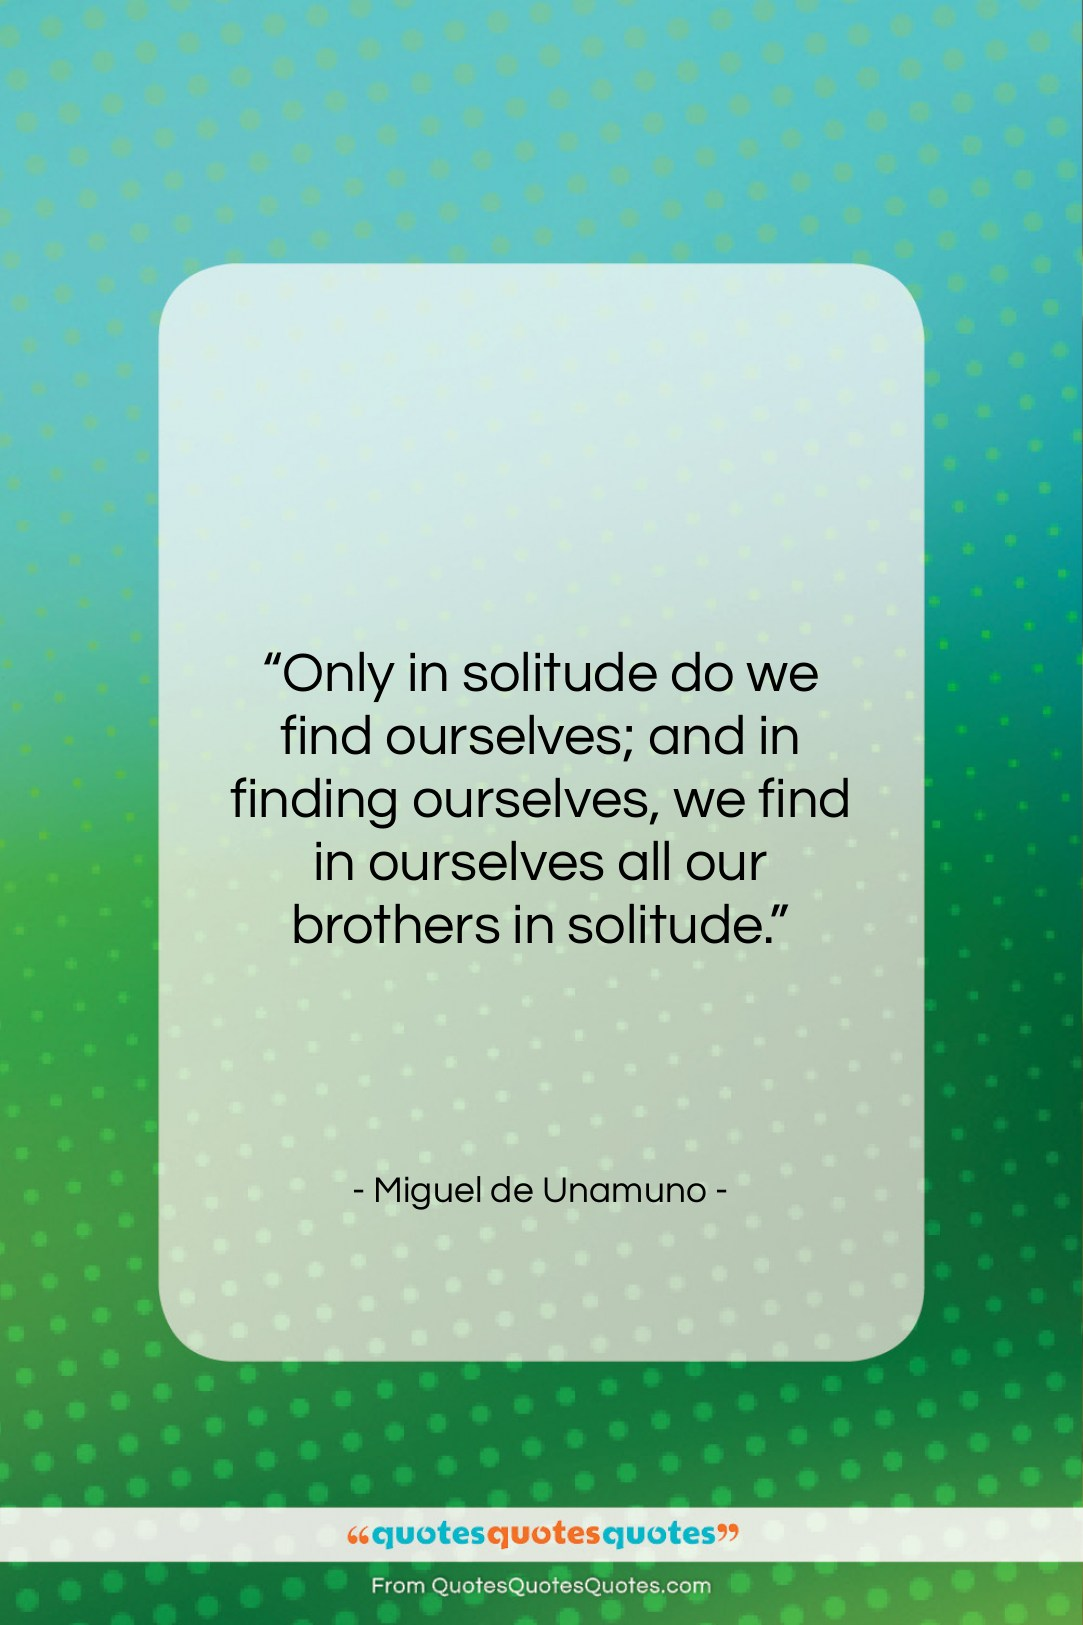 """Miguel de Unamuno quote: """"Only in solitude do we find ourselves;…""""- at QuotesQuotesQuotes.com"""